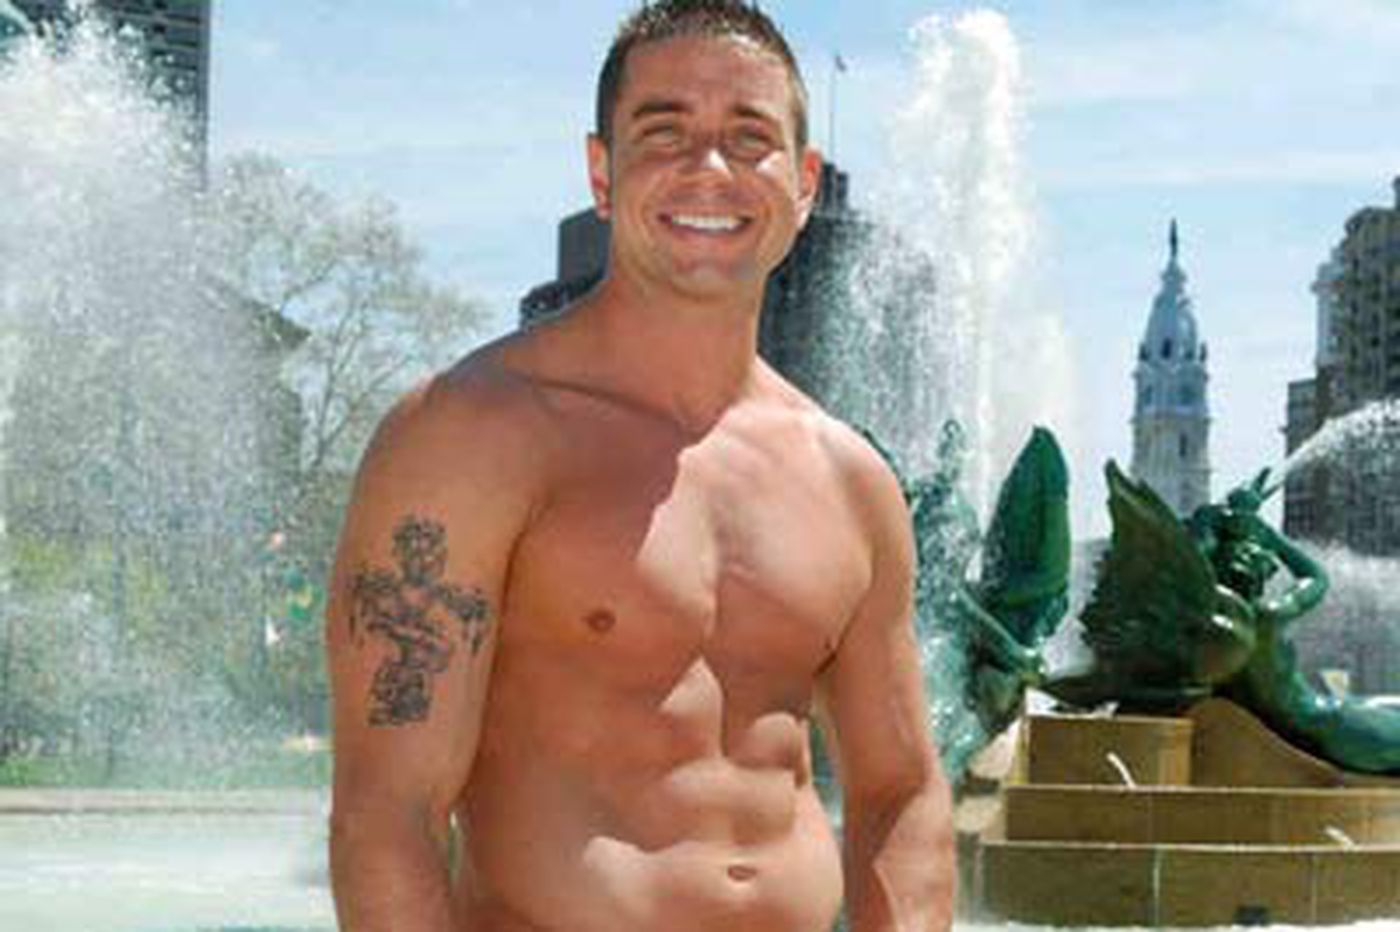 Firefighter who posed for calendar, against policy, has been reassigned